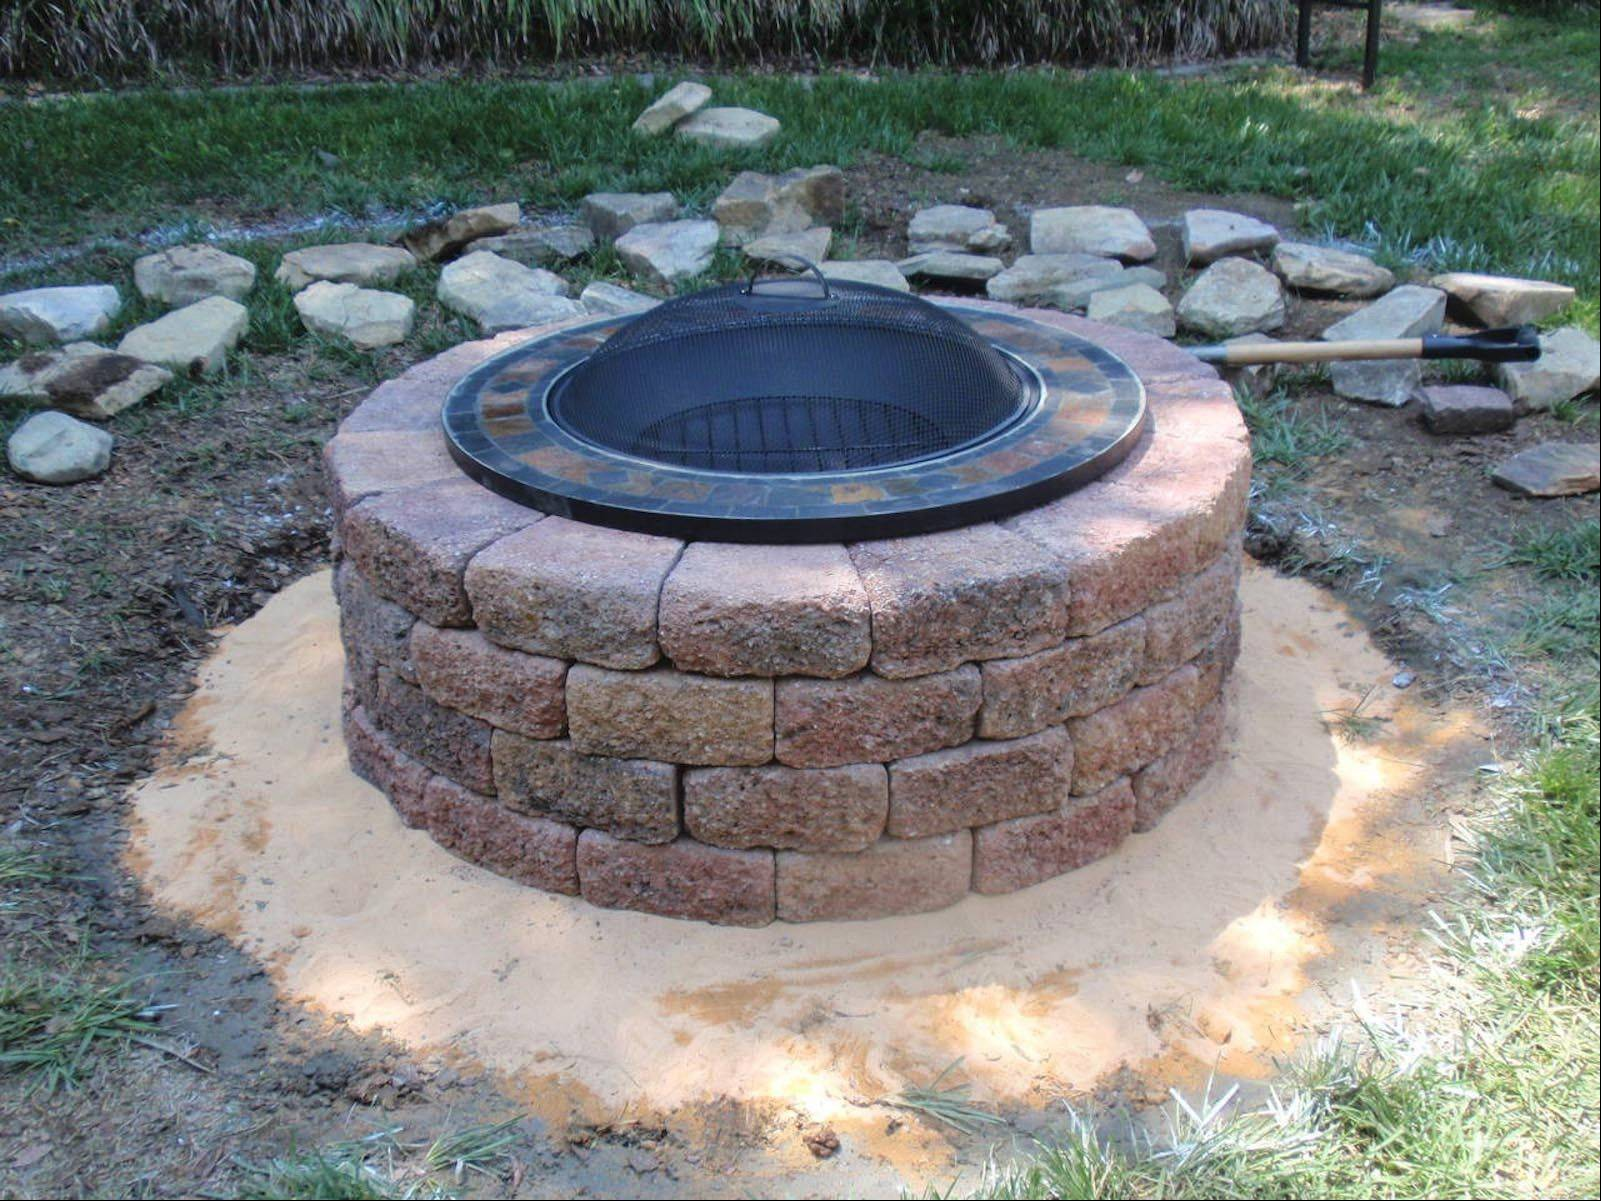 This simple fire pit was made from tumbled concrete pavers with diagonal edges that may be used as is, or add a metal insert as shown here.